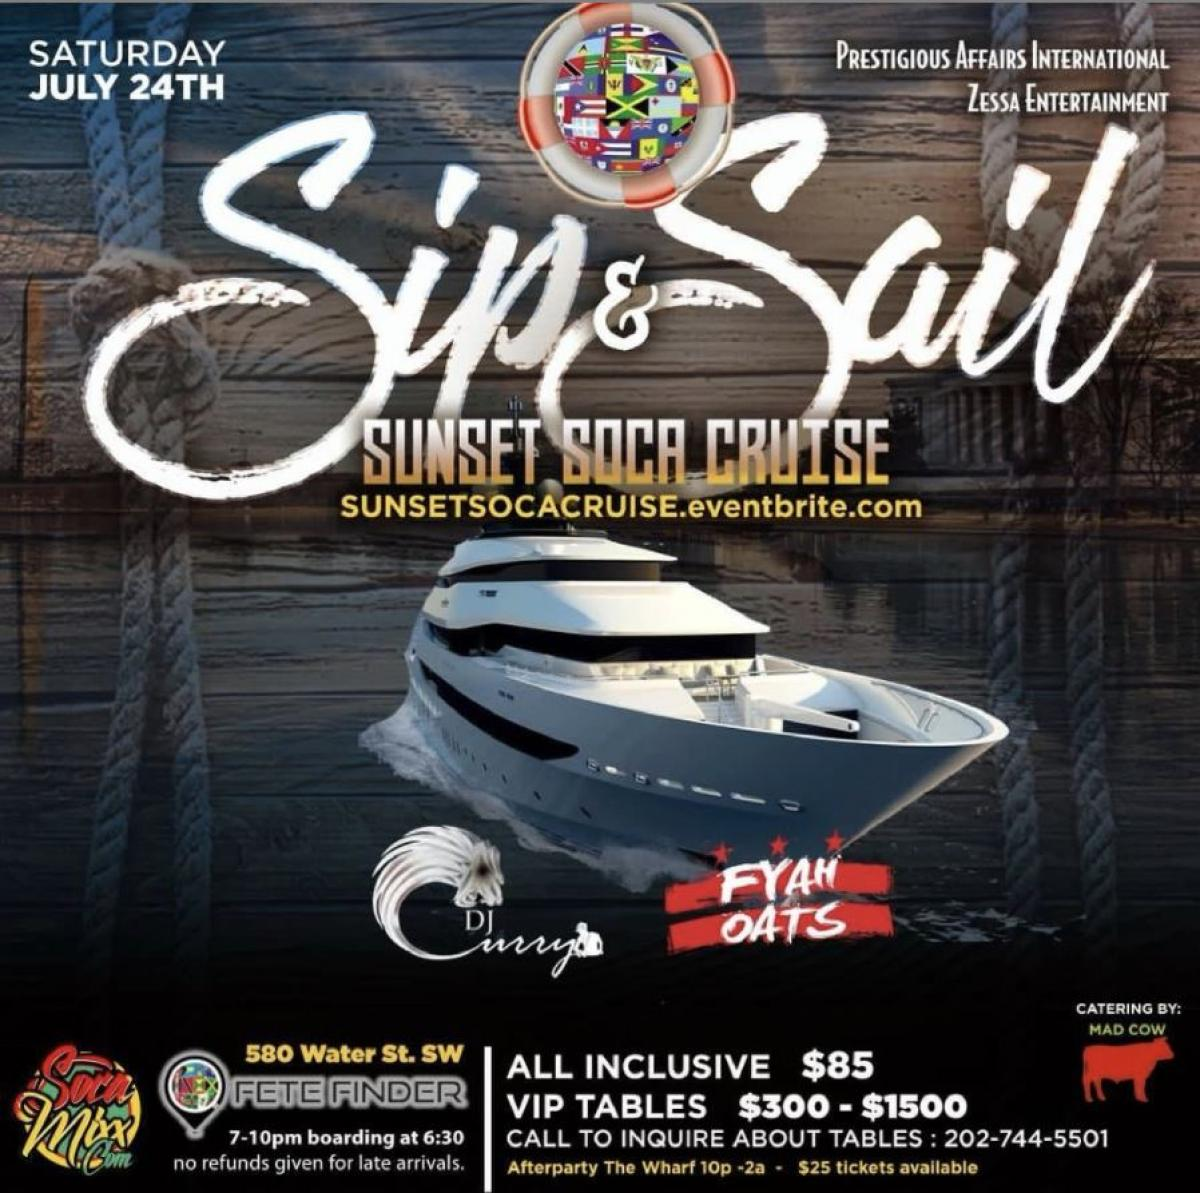 Sip & Sail flyer or graphic.